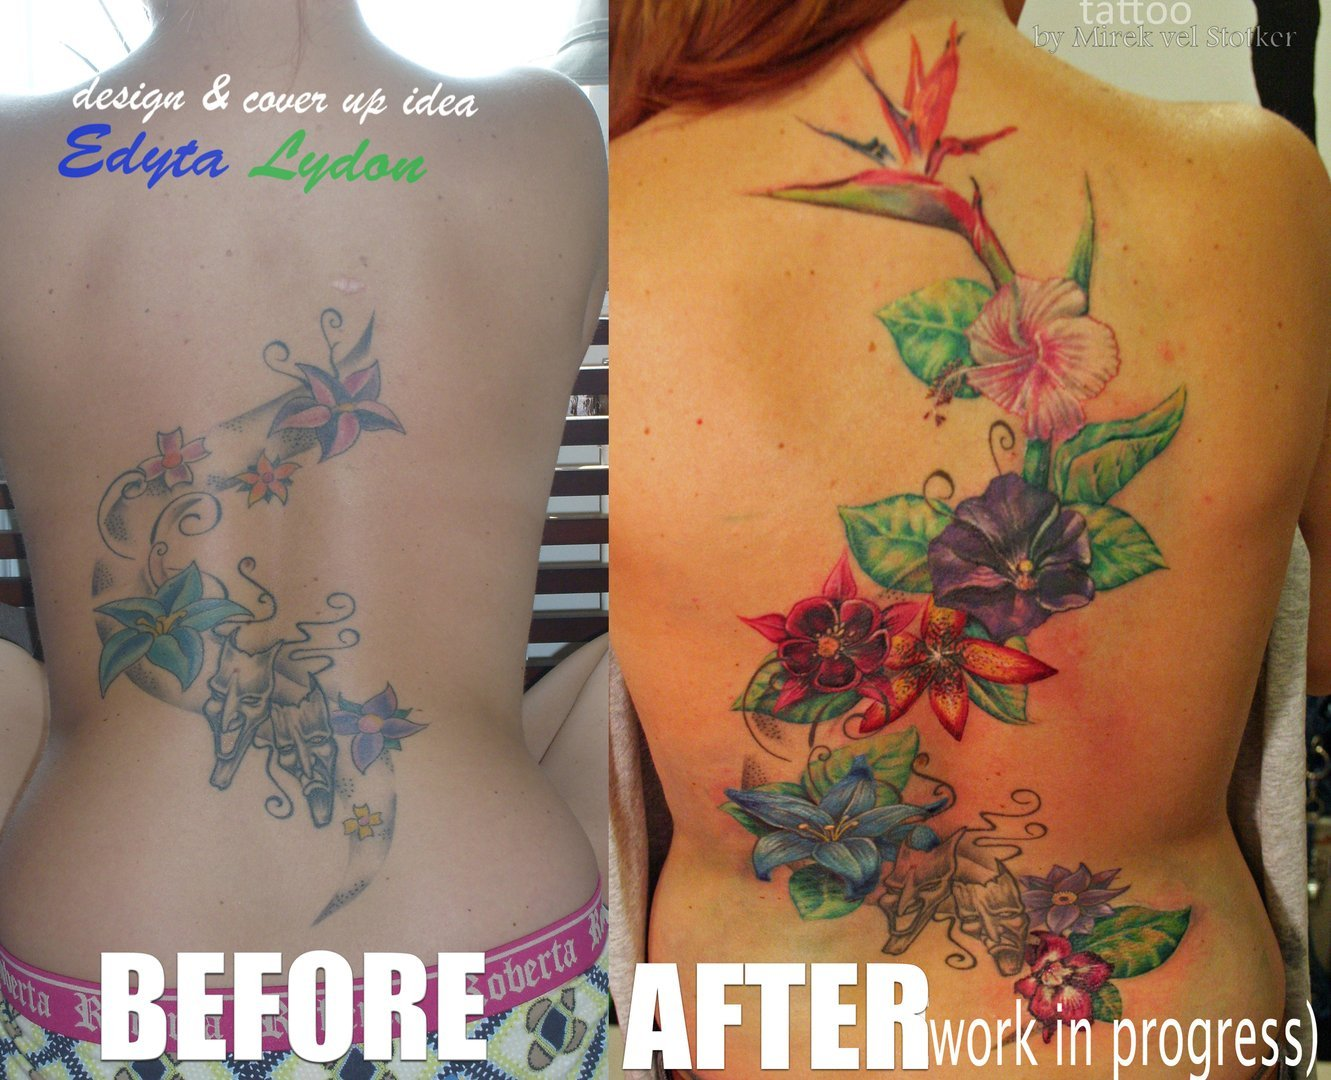 London Blue Lady Tattoo & Piercing- Specialising in Cover Ups